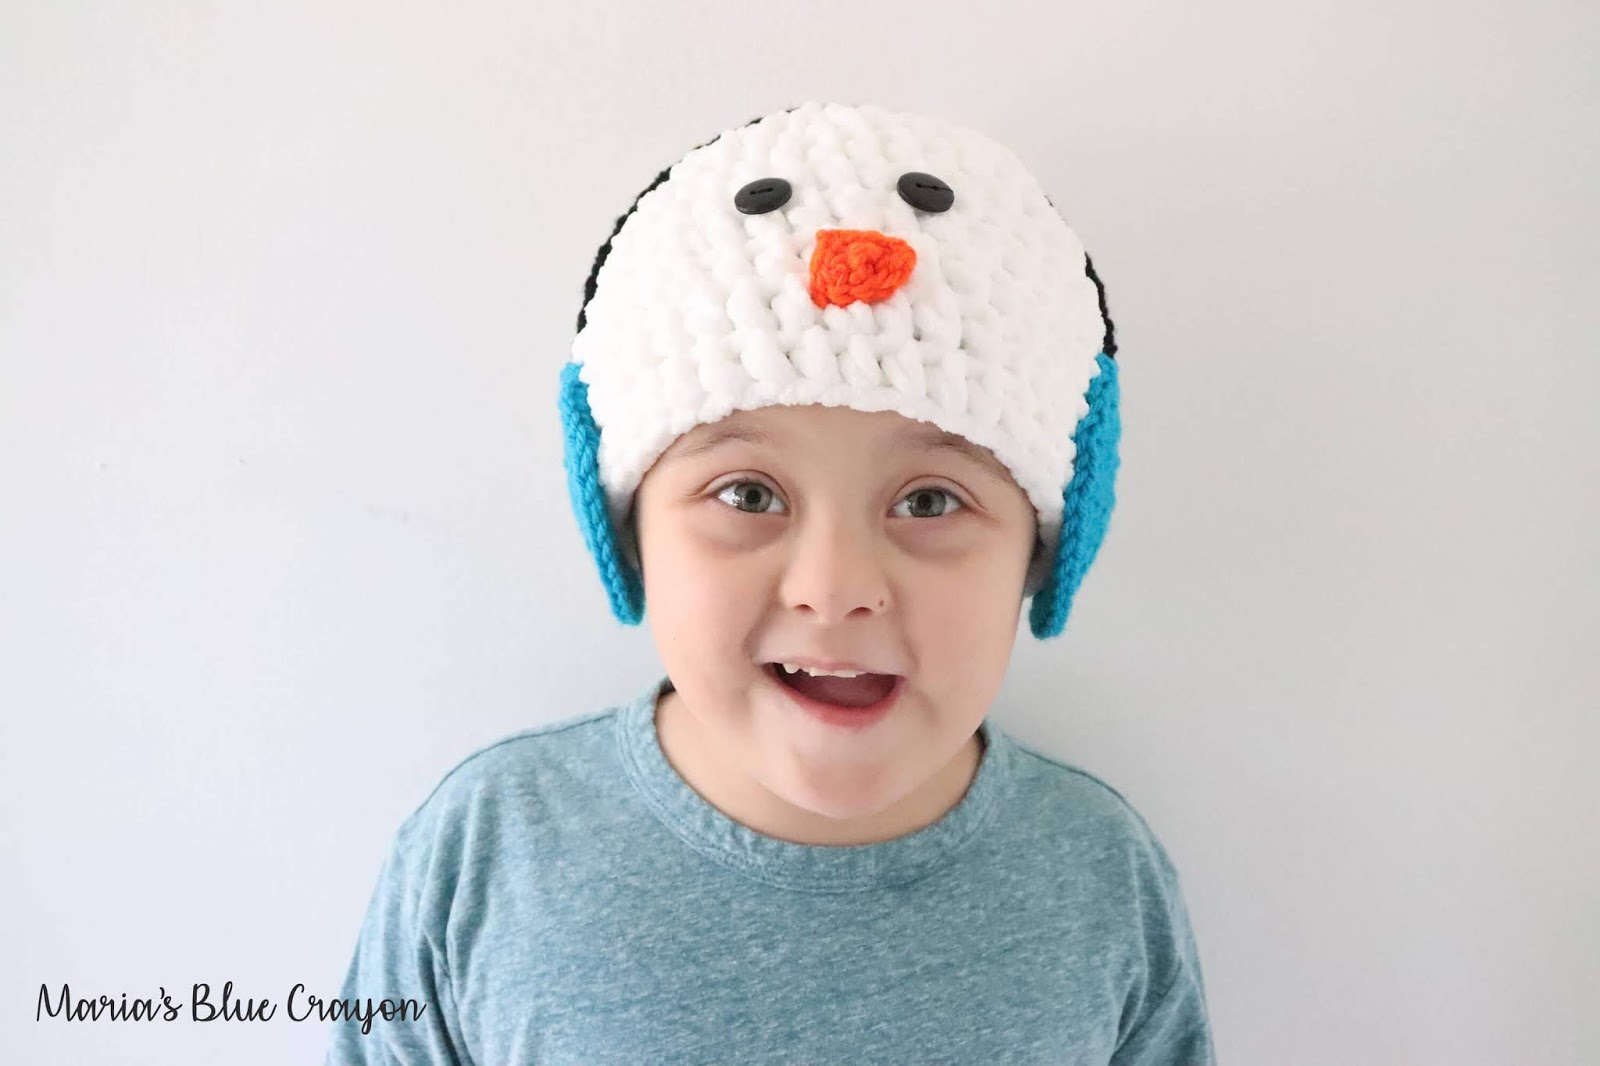 ccc777263 Snowman with Earmuffs Crochet Hat - Free Crochet Pattern for All ...